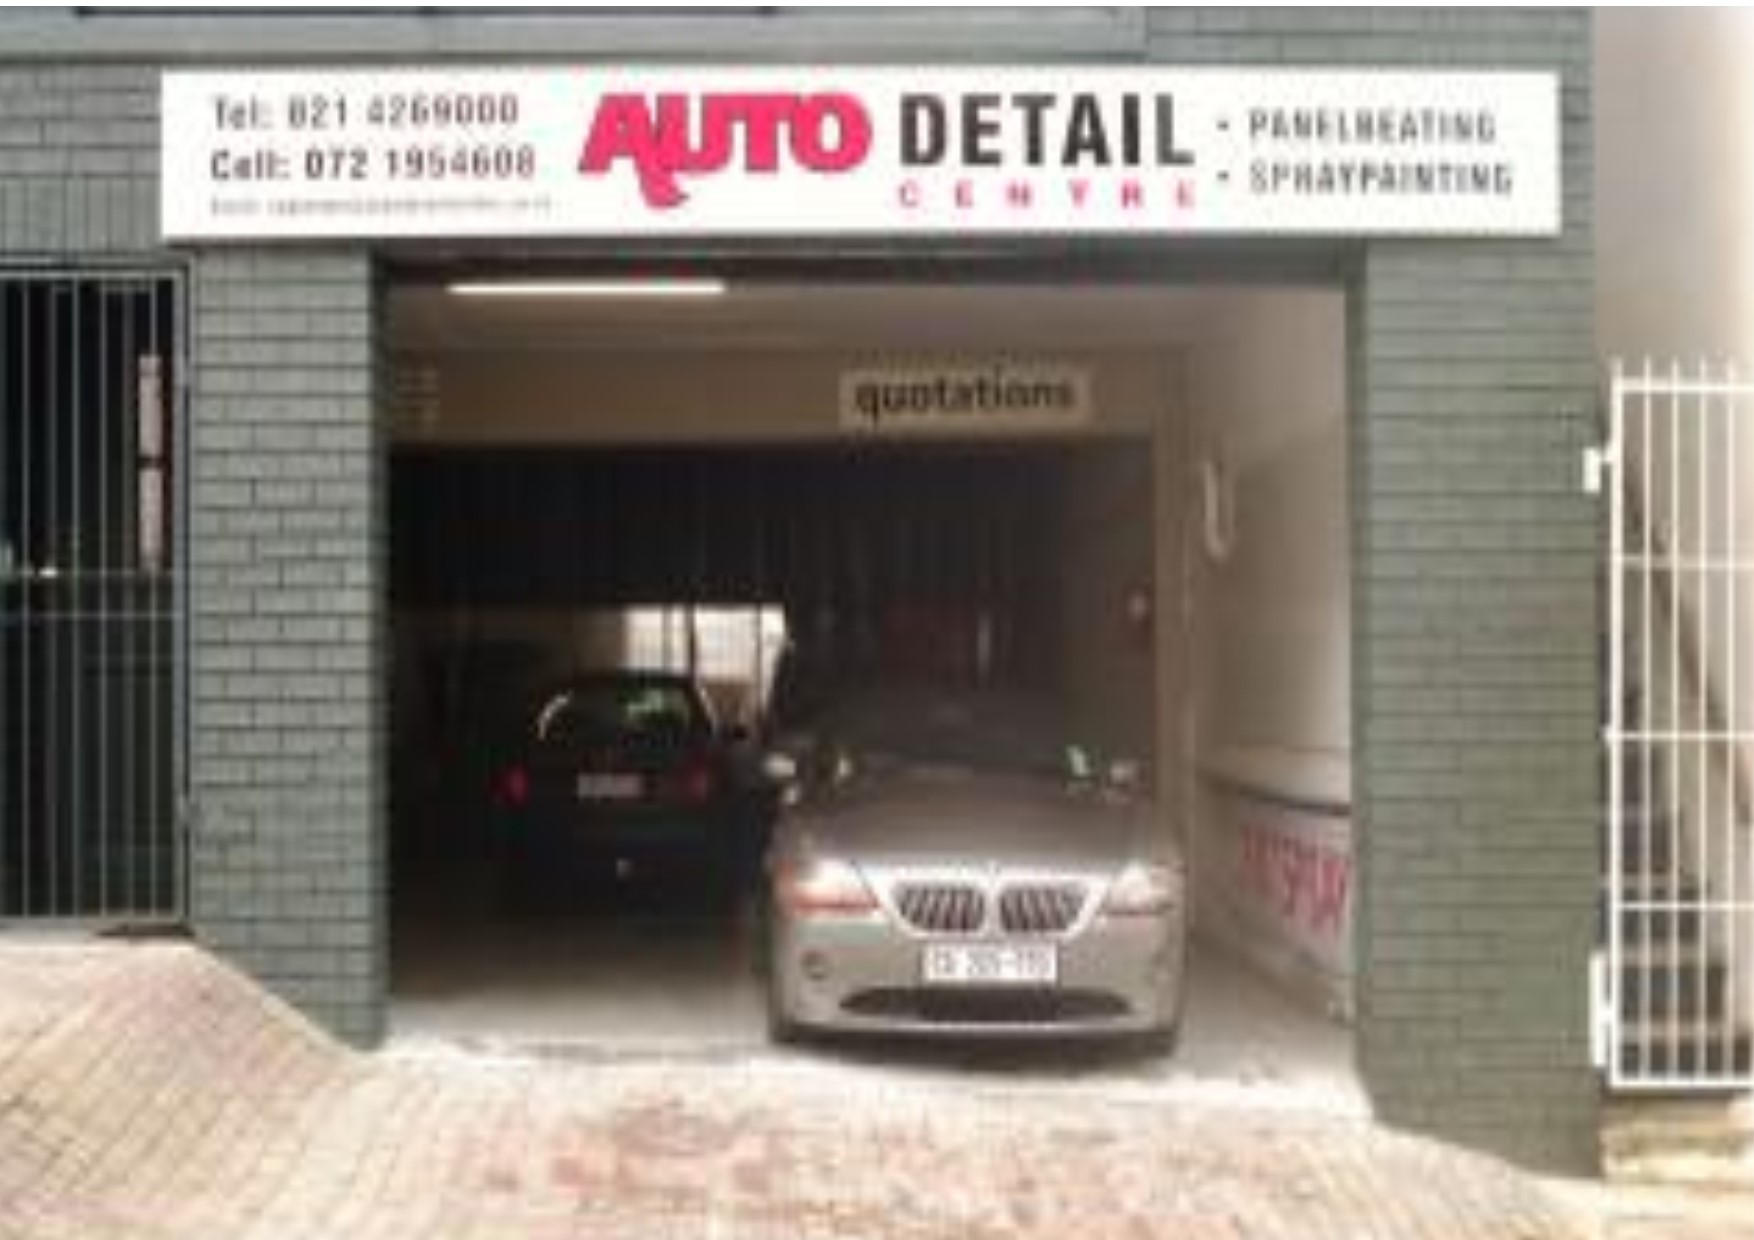 Auto Detail Centre - Cape CBD Closed Down